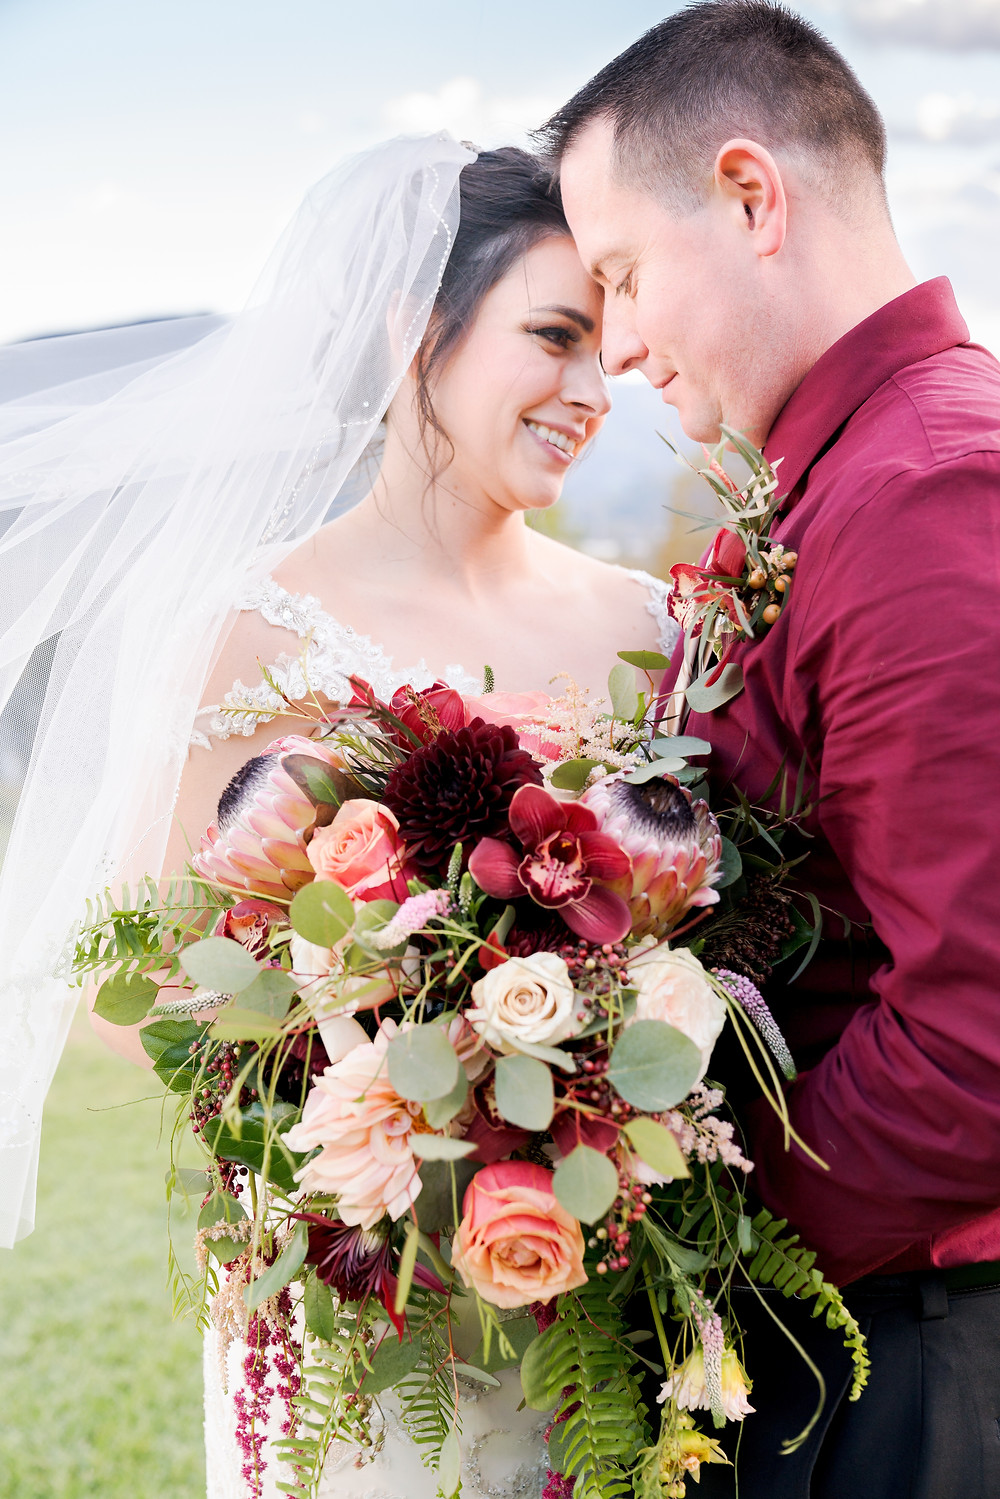 Custom Wedding Flowers, Laurel Ridge Country Club and Event Center, McKenzie Botanicals Flowers